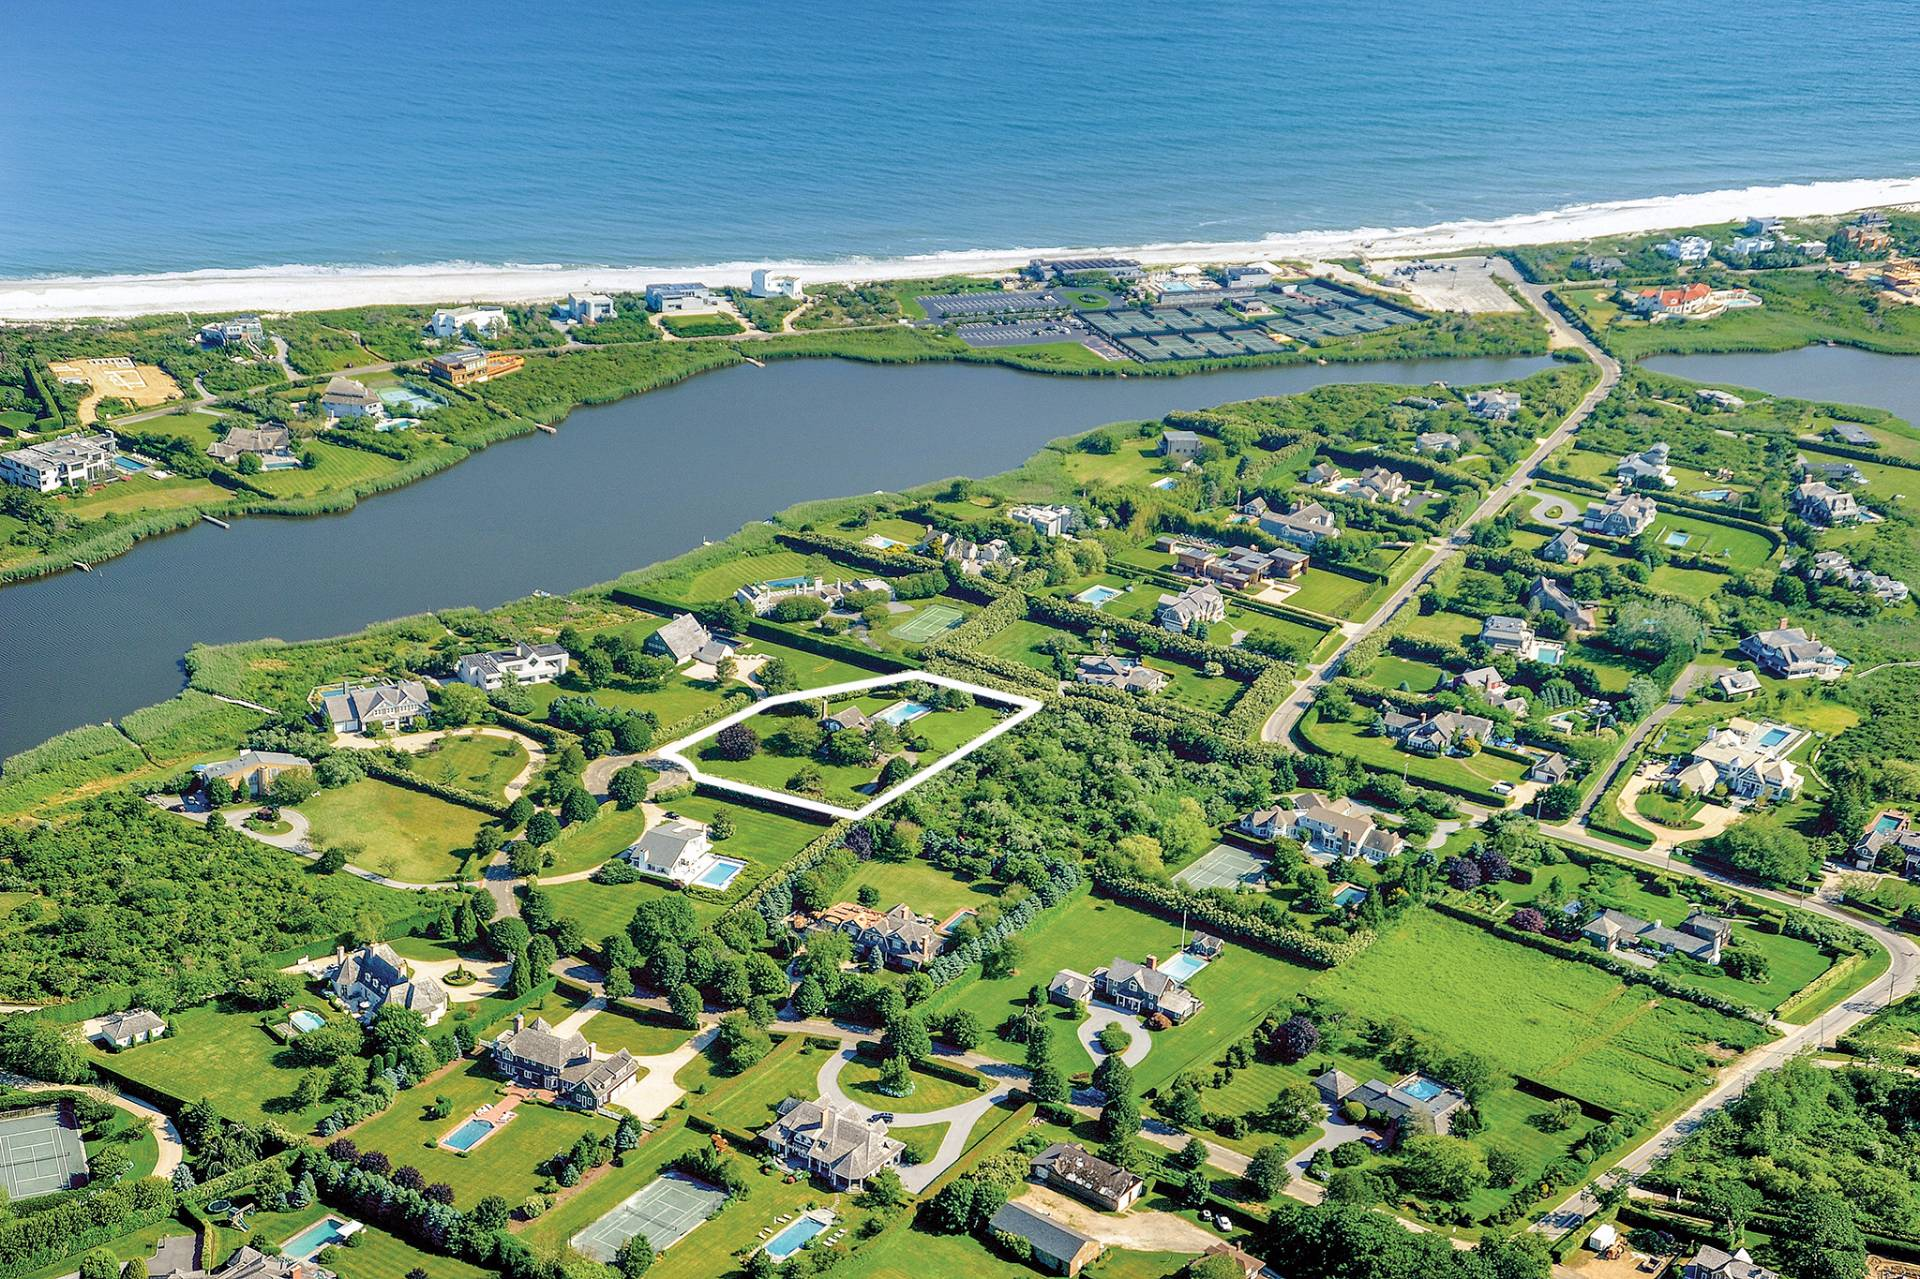 Single Family Home for Sale at Bridgehampton South Ocean And Tributary Bay Views 114 Rose Way, Bridgehampton, New York